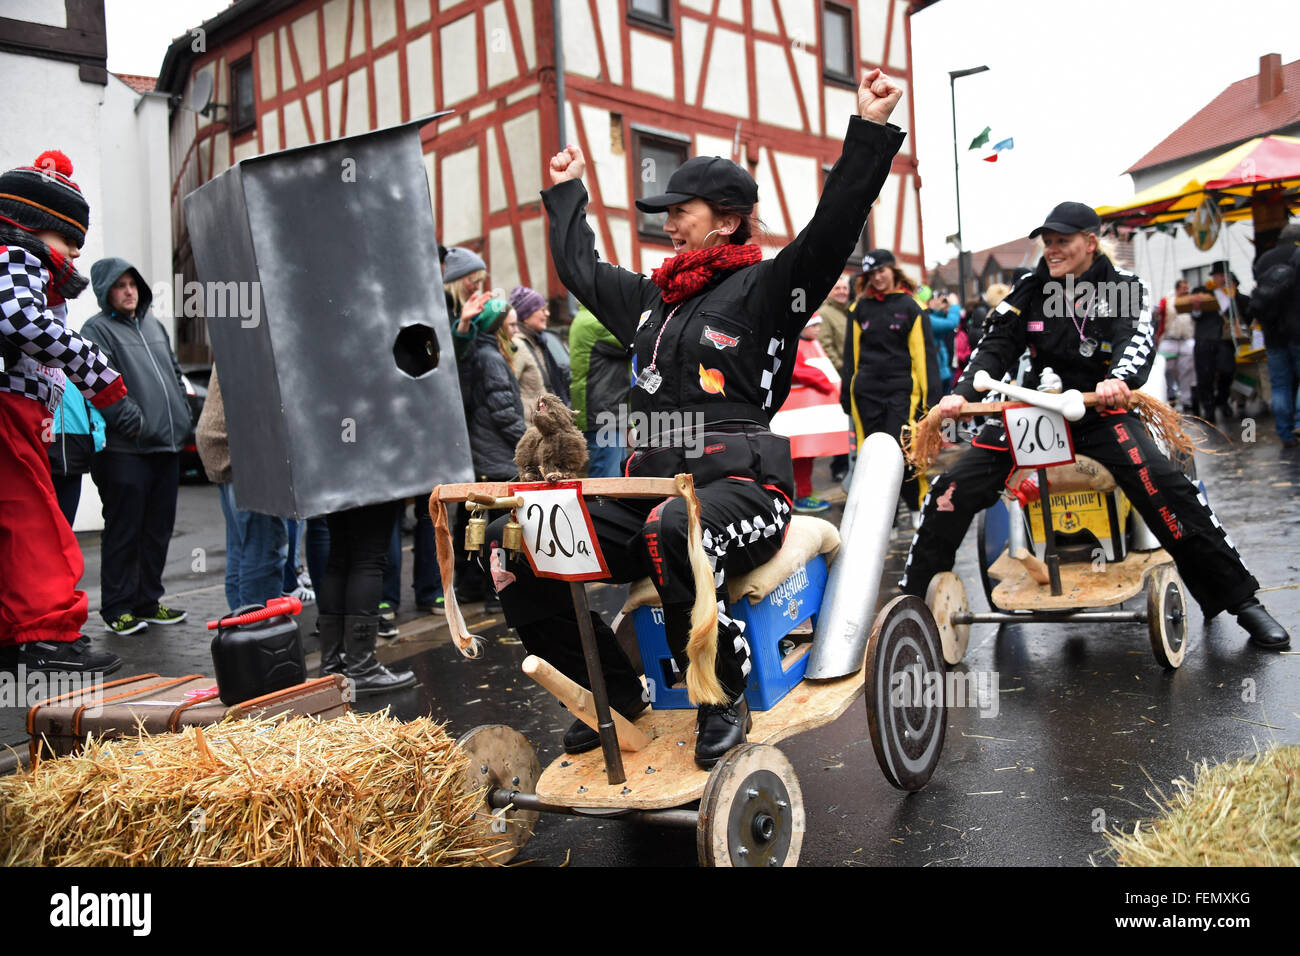 Herbststein, Germany. 08th Feb, 2016. Carnival revellers celebrate despite the rainy weather during the traditional - Stock Image